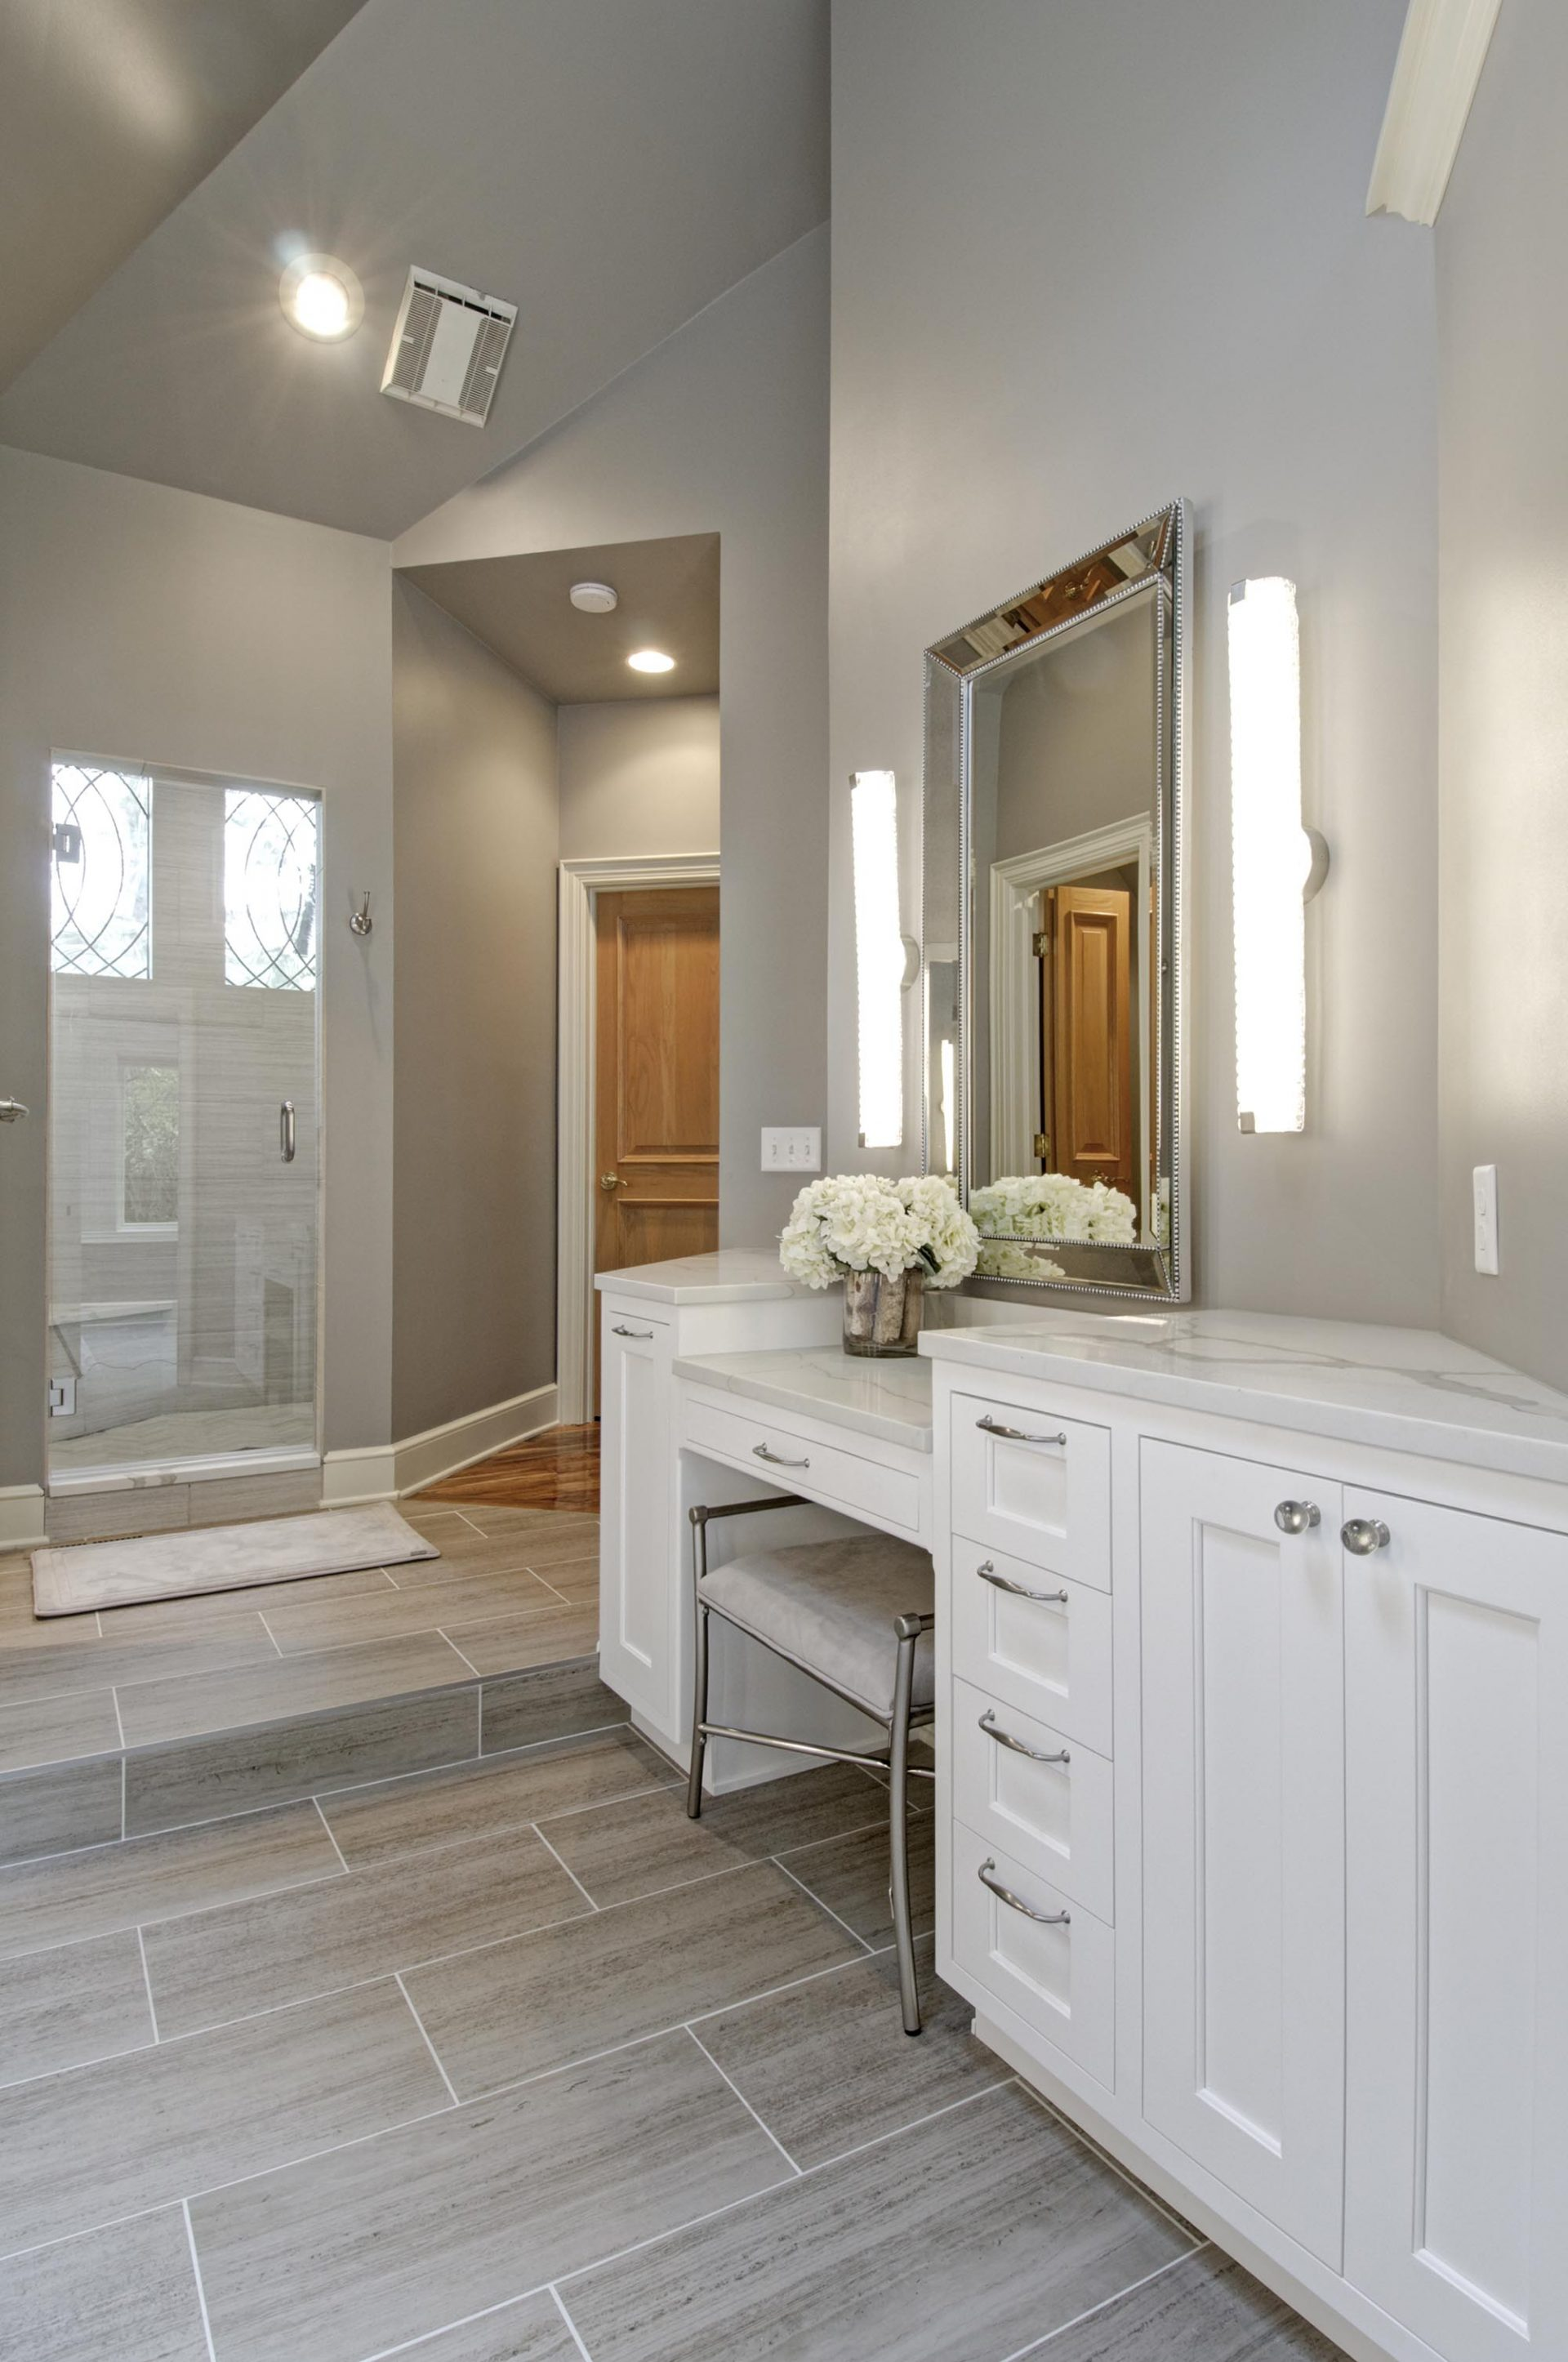 Master Bath, Dublin, Dave Fox, Remodel, freestanding tub, stacked tile, fireplace, quartz